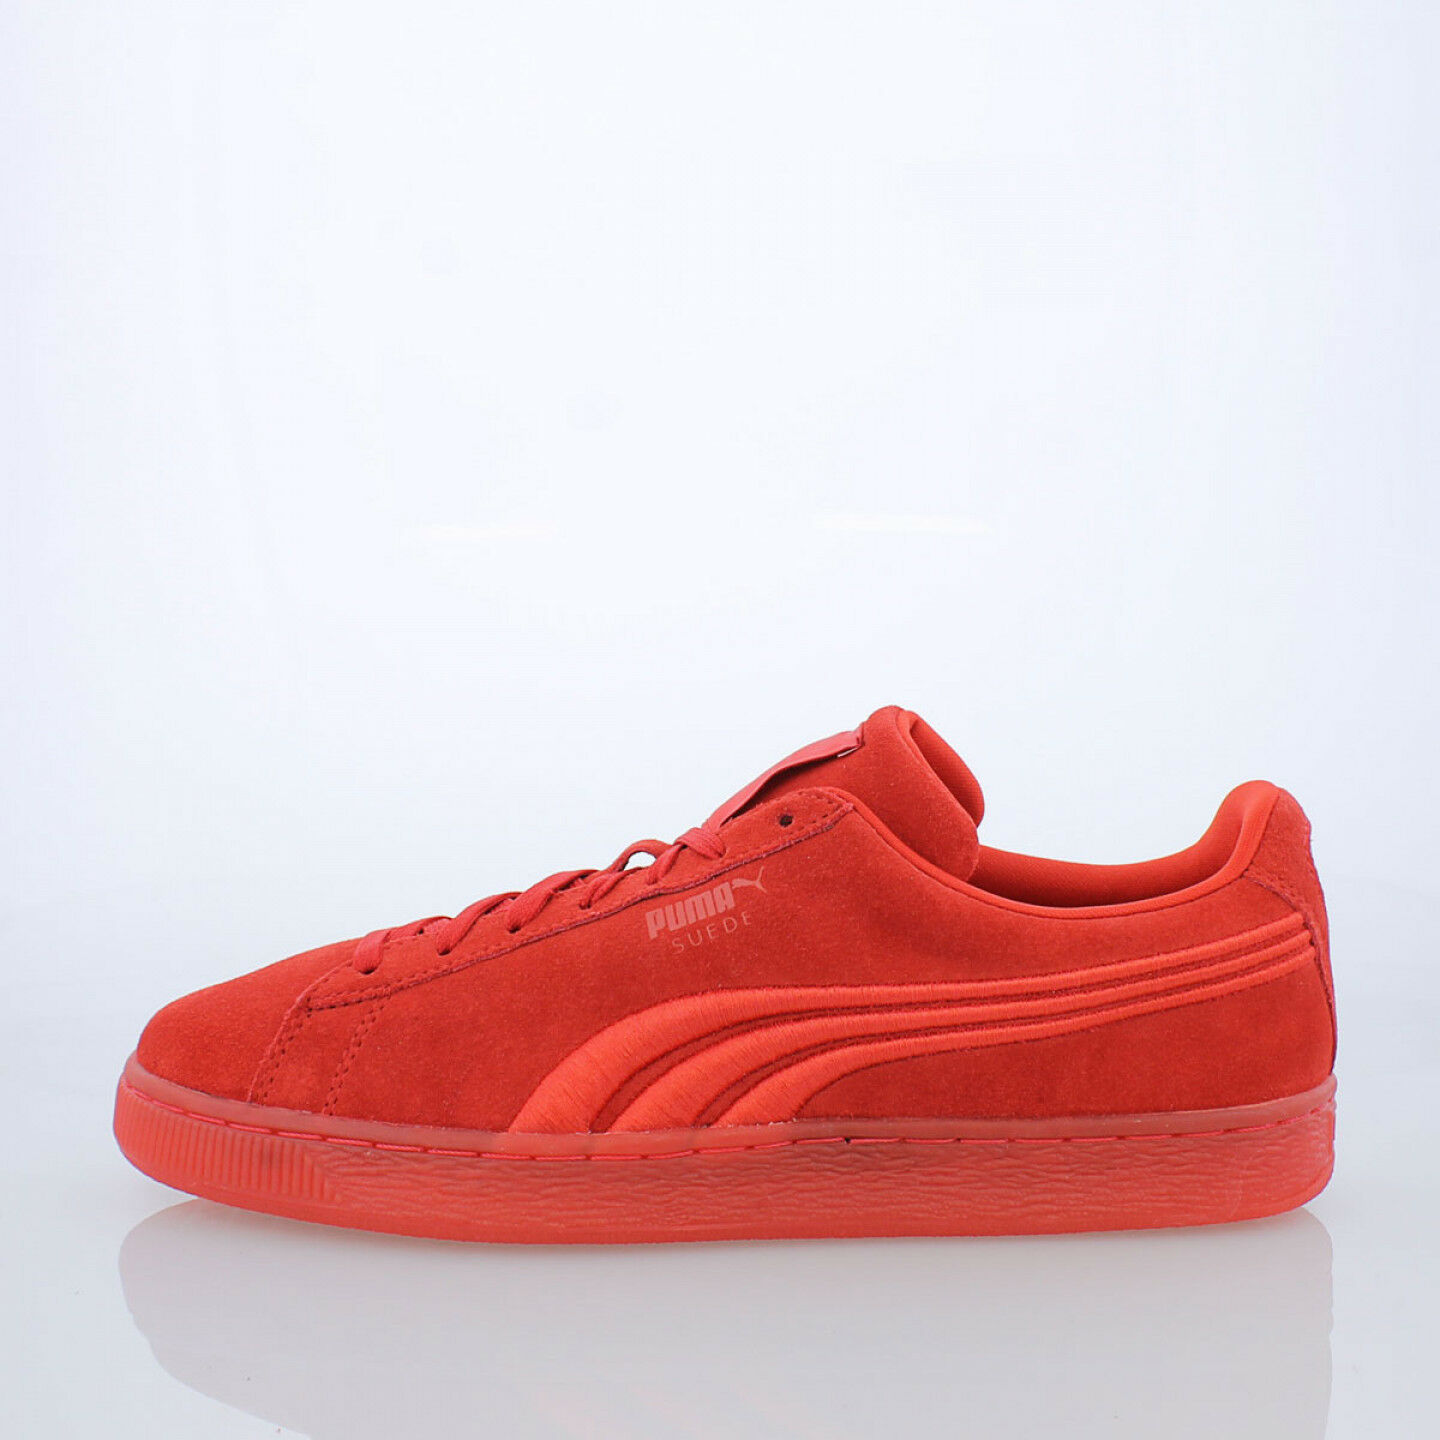 SALE MENS PUMA ROMA ANO HIGH RISK rot 364483 01 BRAND NEW IN BOX schuhe